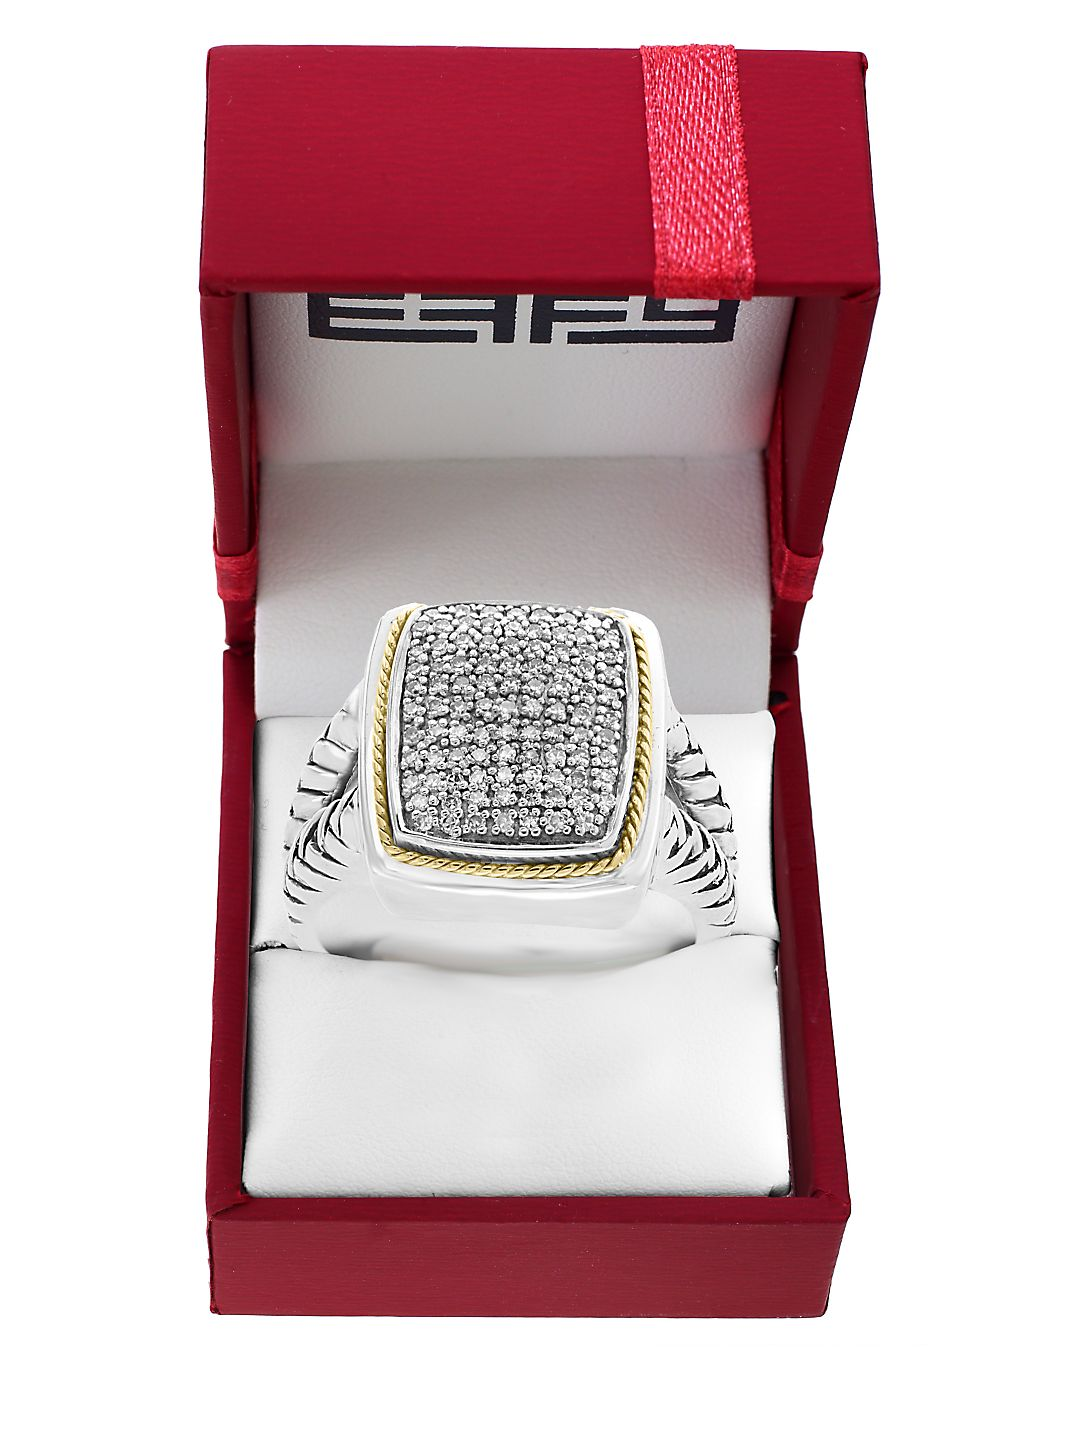 Effy 925 Sterling Silver, Diamond & 14K Yellow Gold Ring